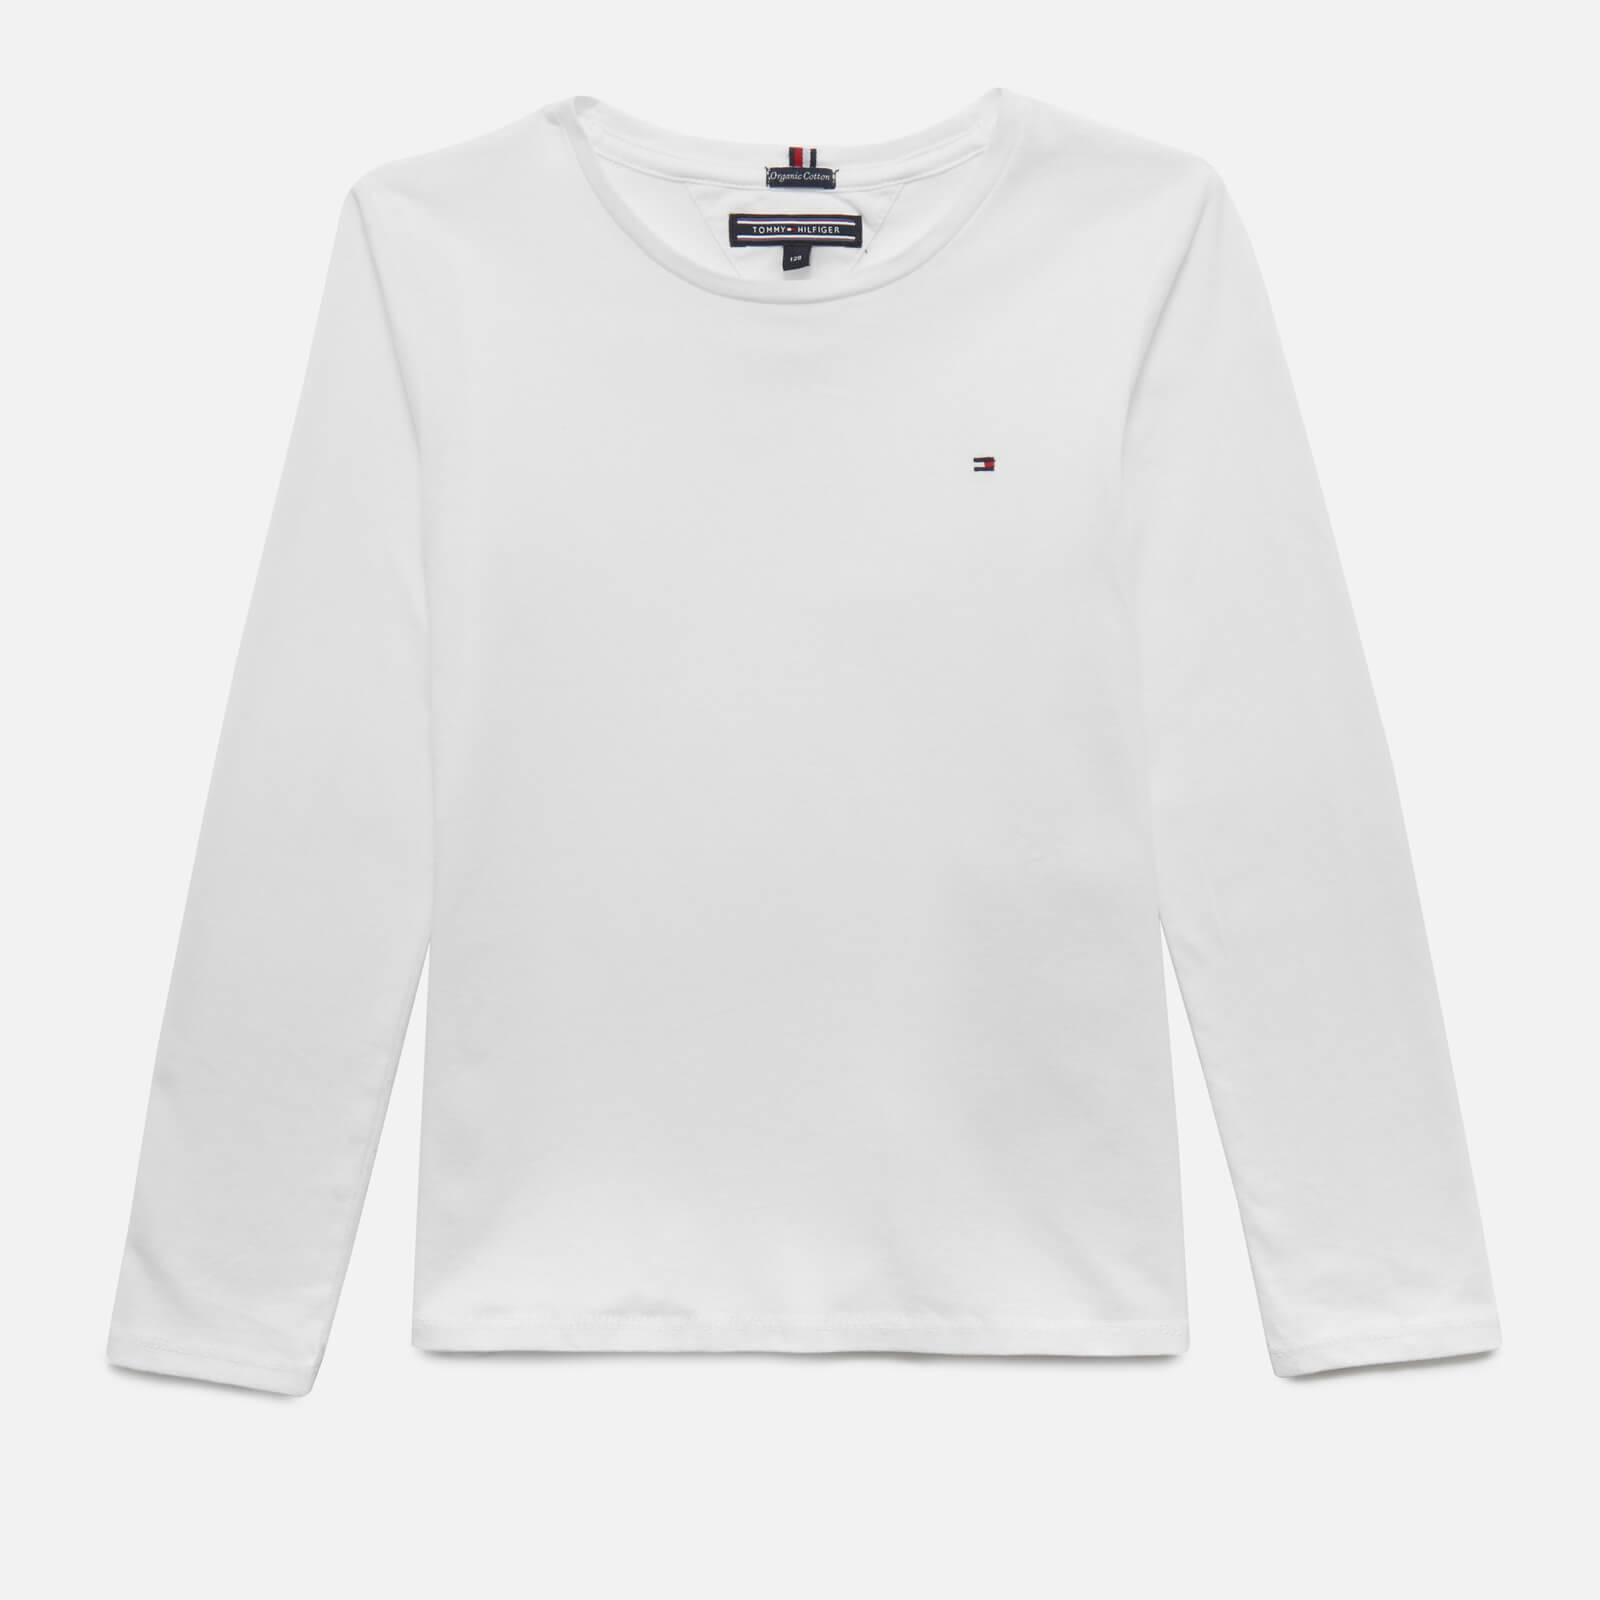 Tommy Kids Girls' Long Sleeve T-Shirt - Bright White - 12 Years